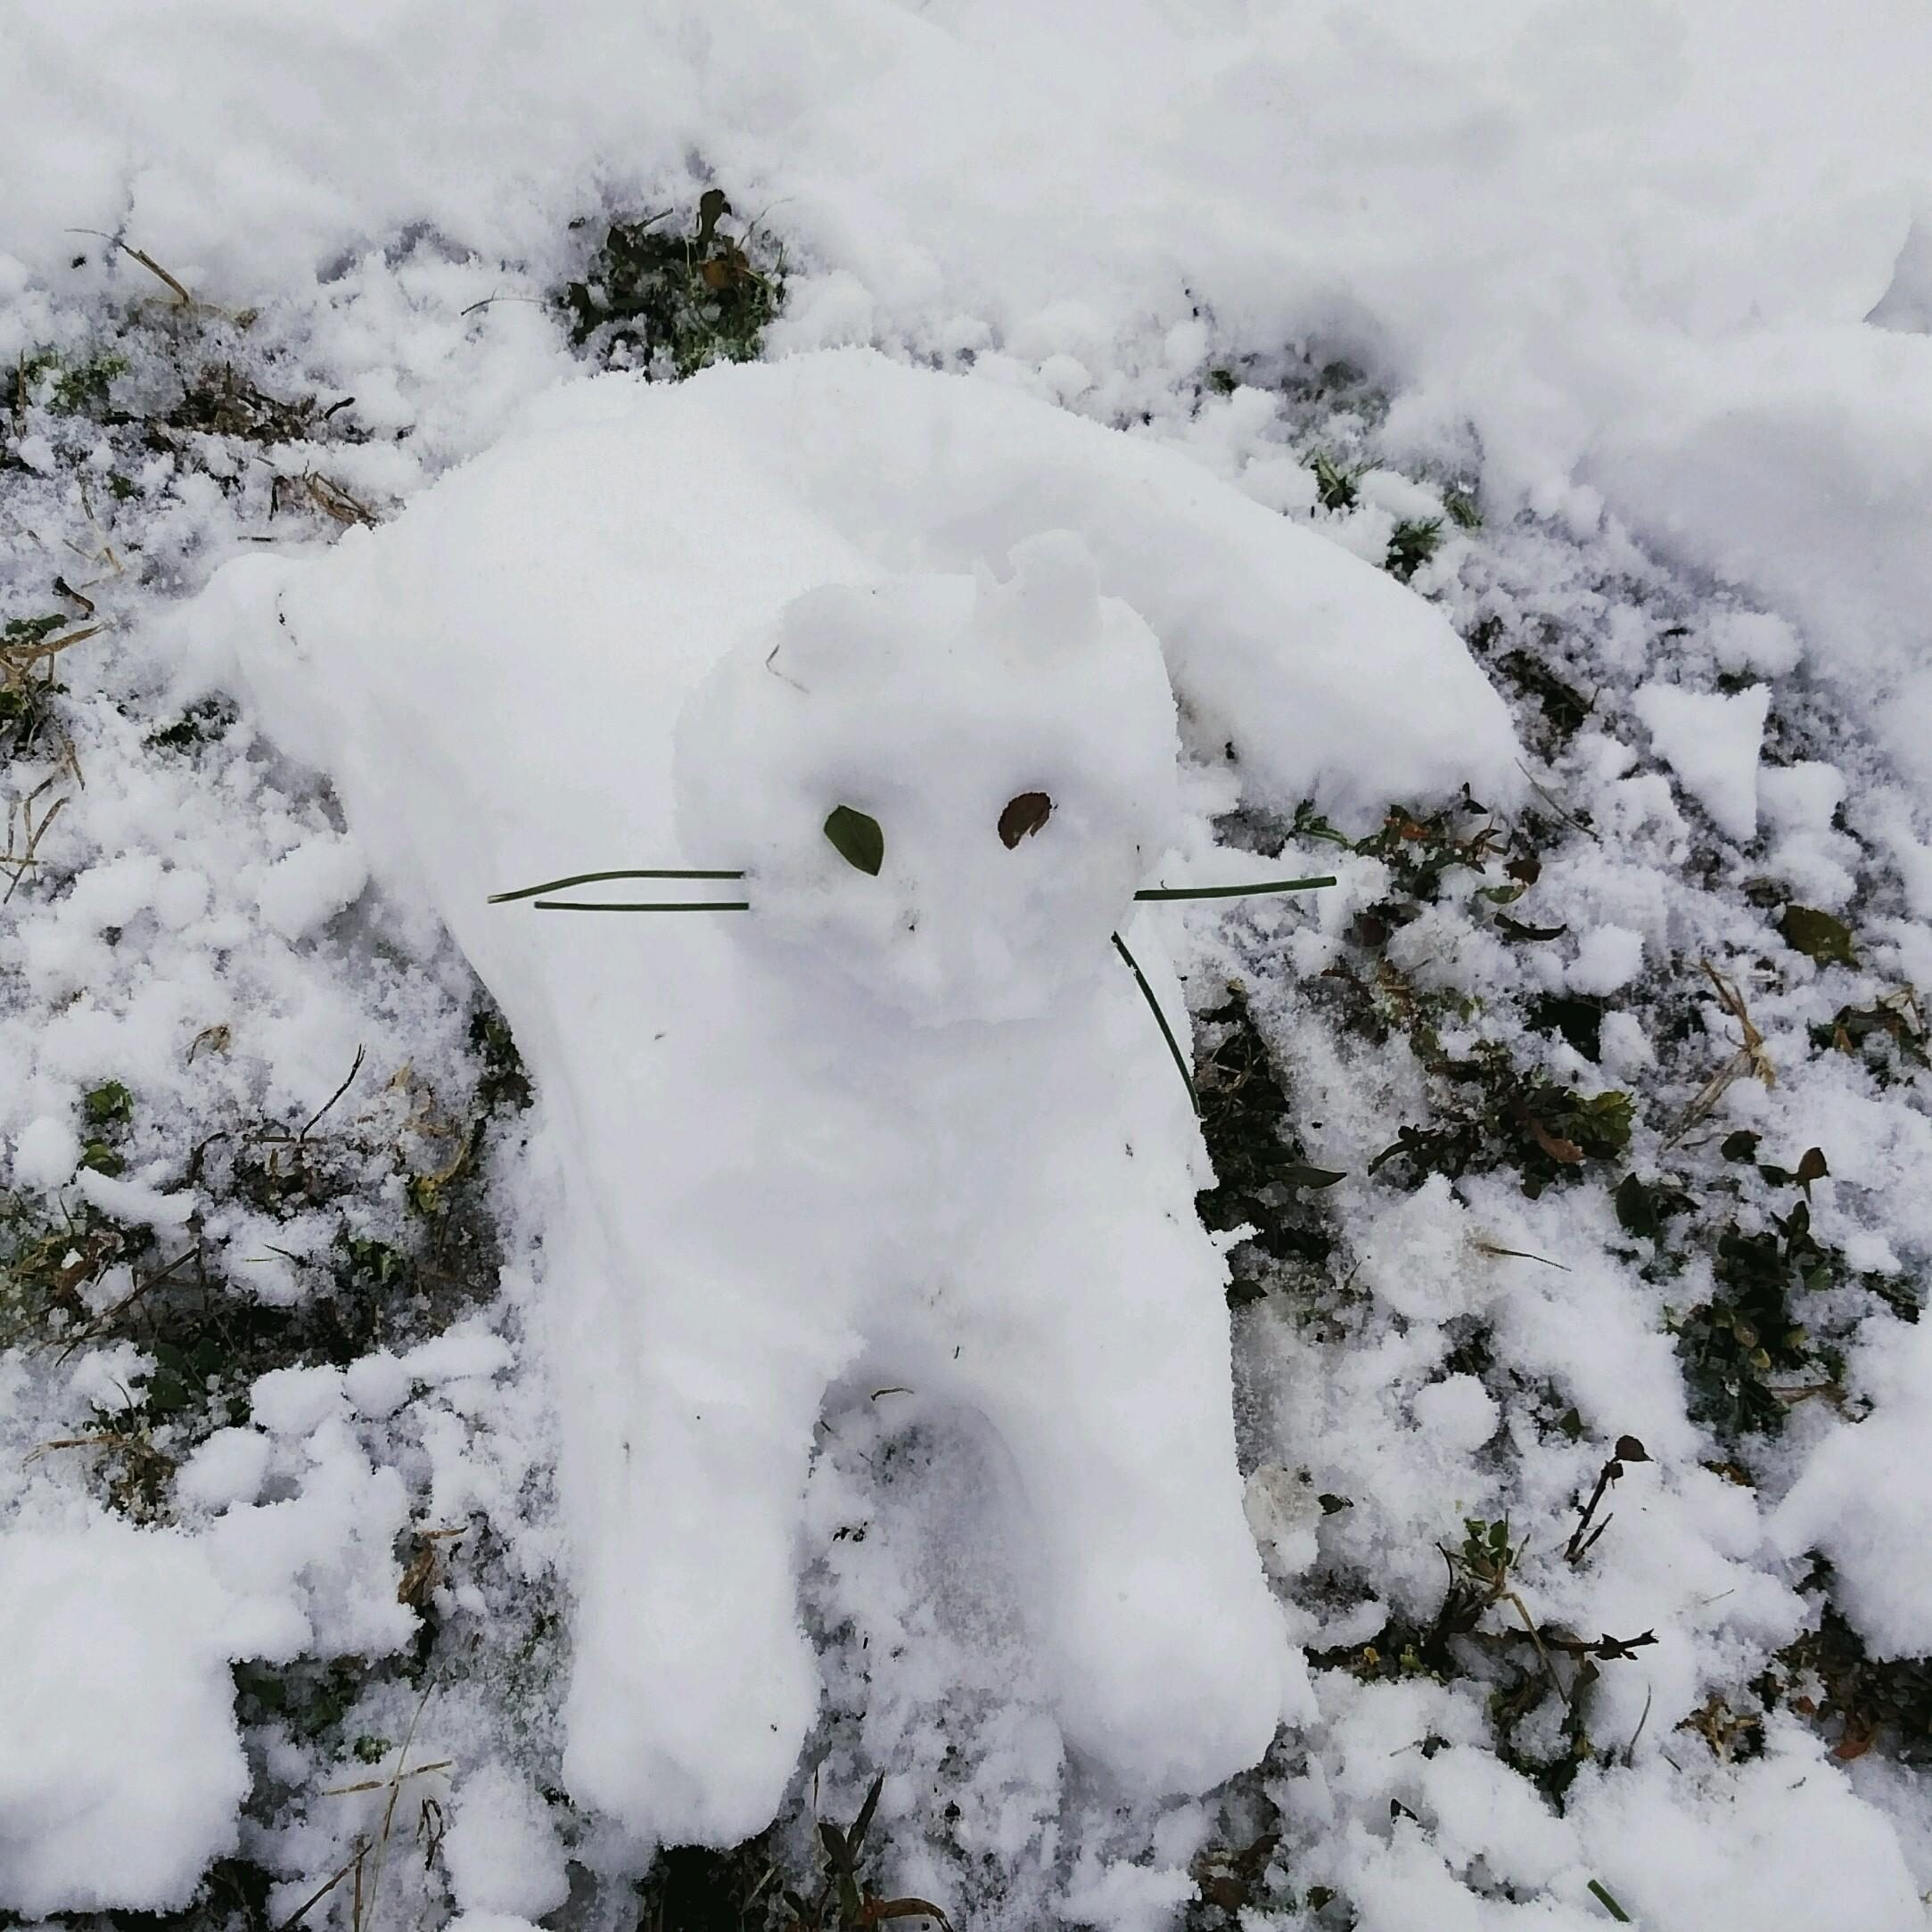 Snow Kitty - art comes in many forms. . .